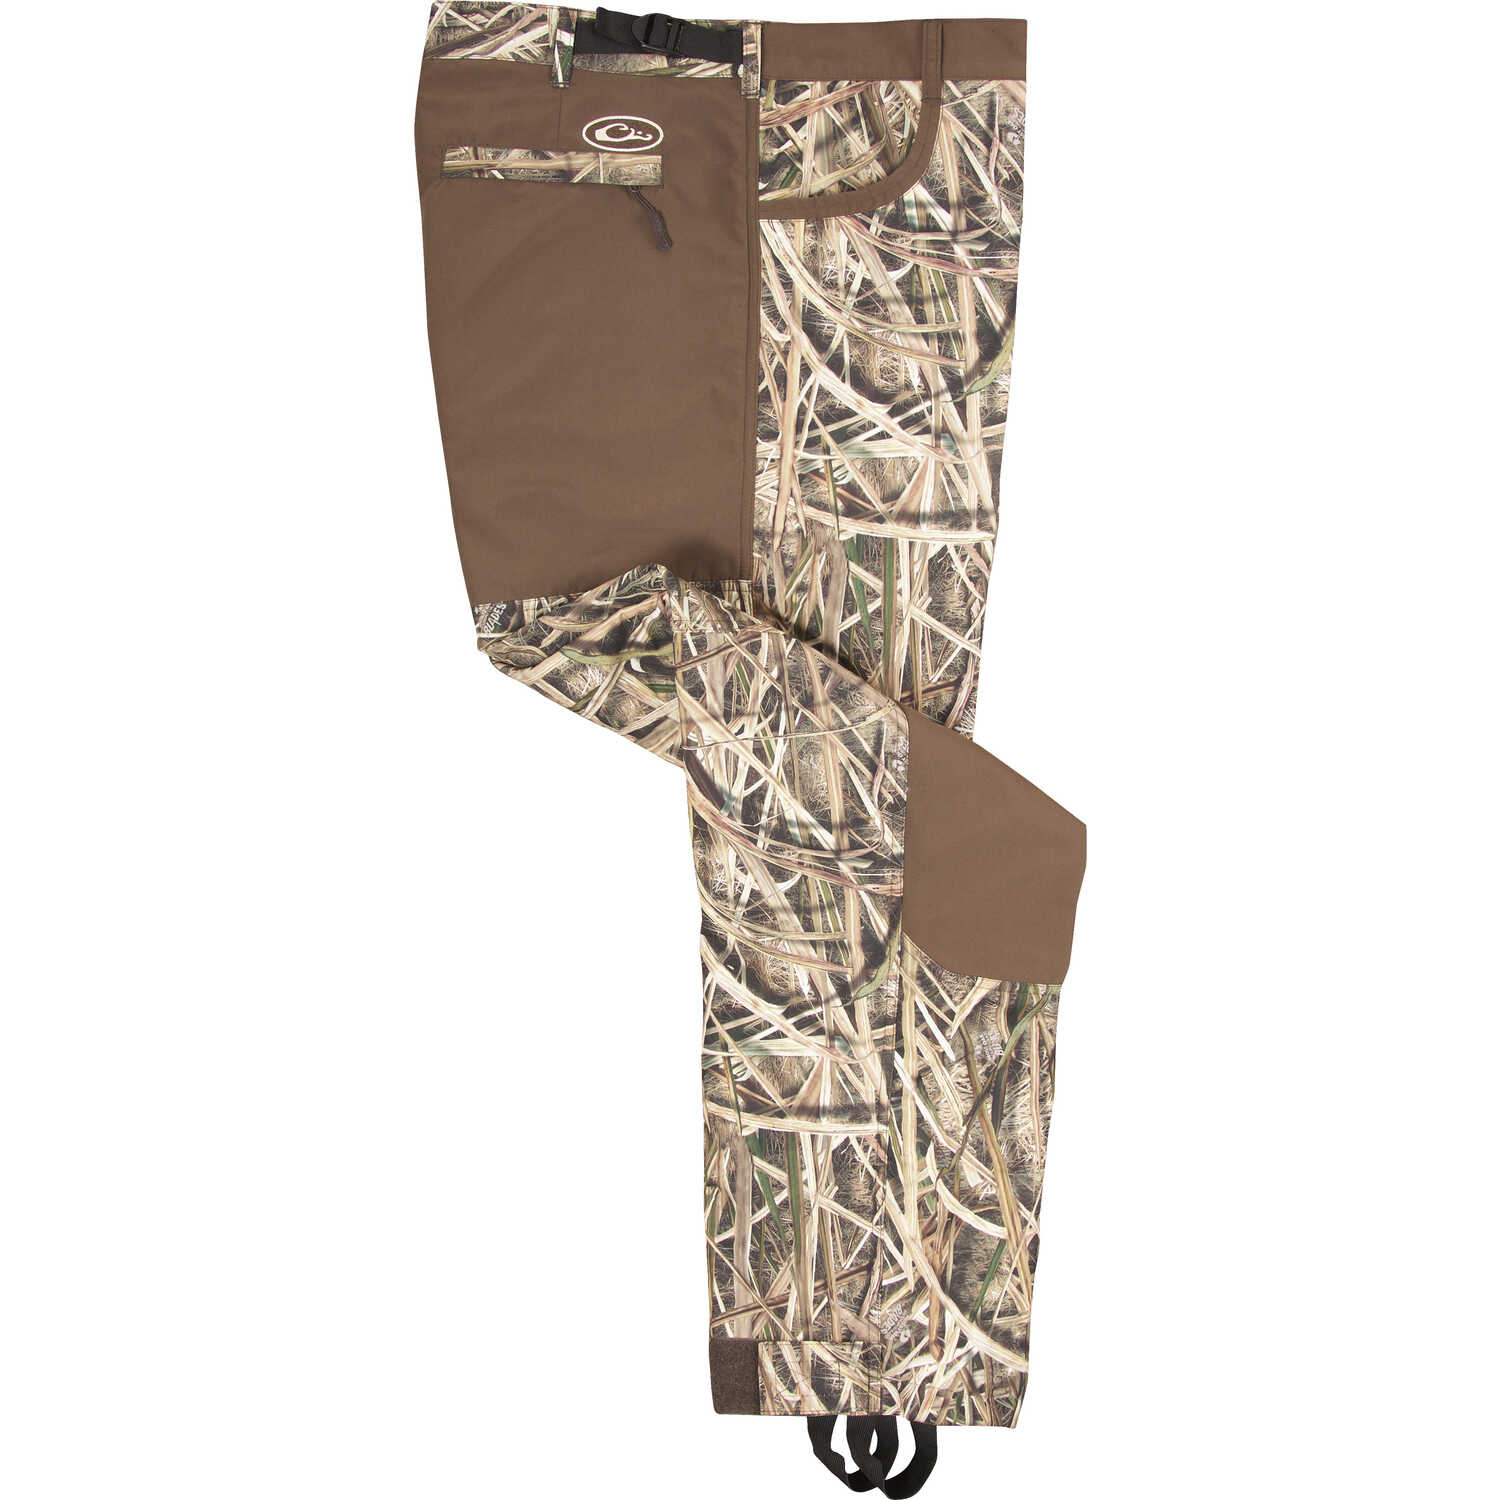 Drake  MST  Men's  Under Wader Pant  L  Realtree Max-5